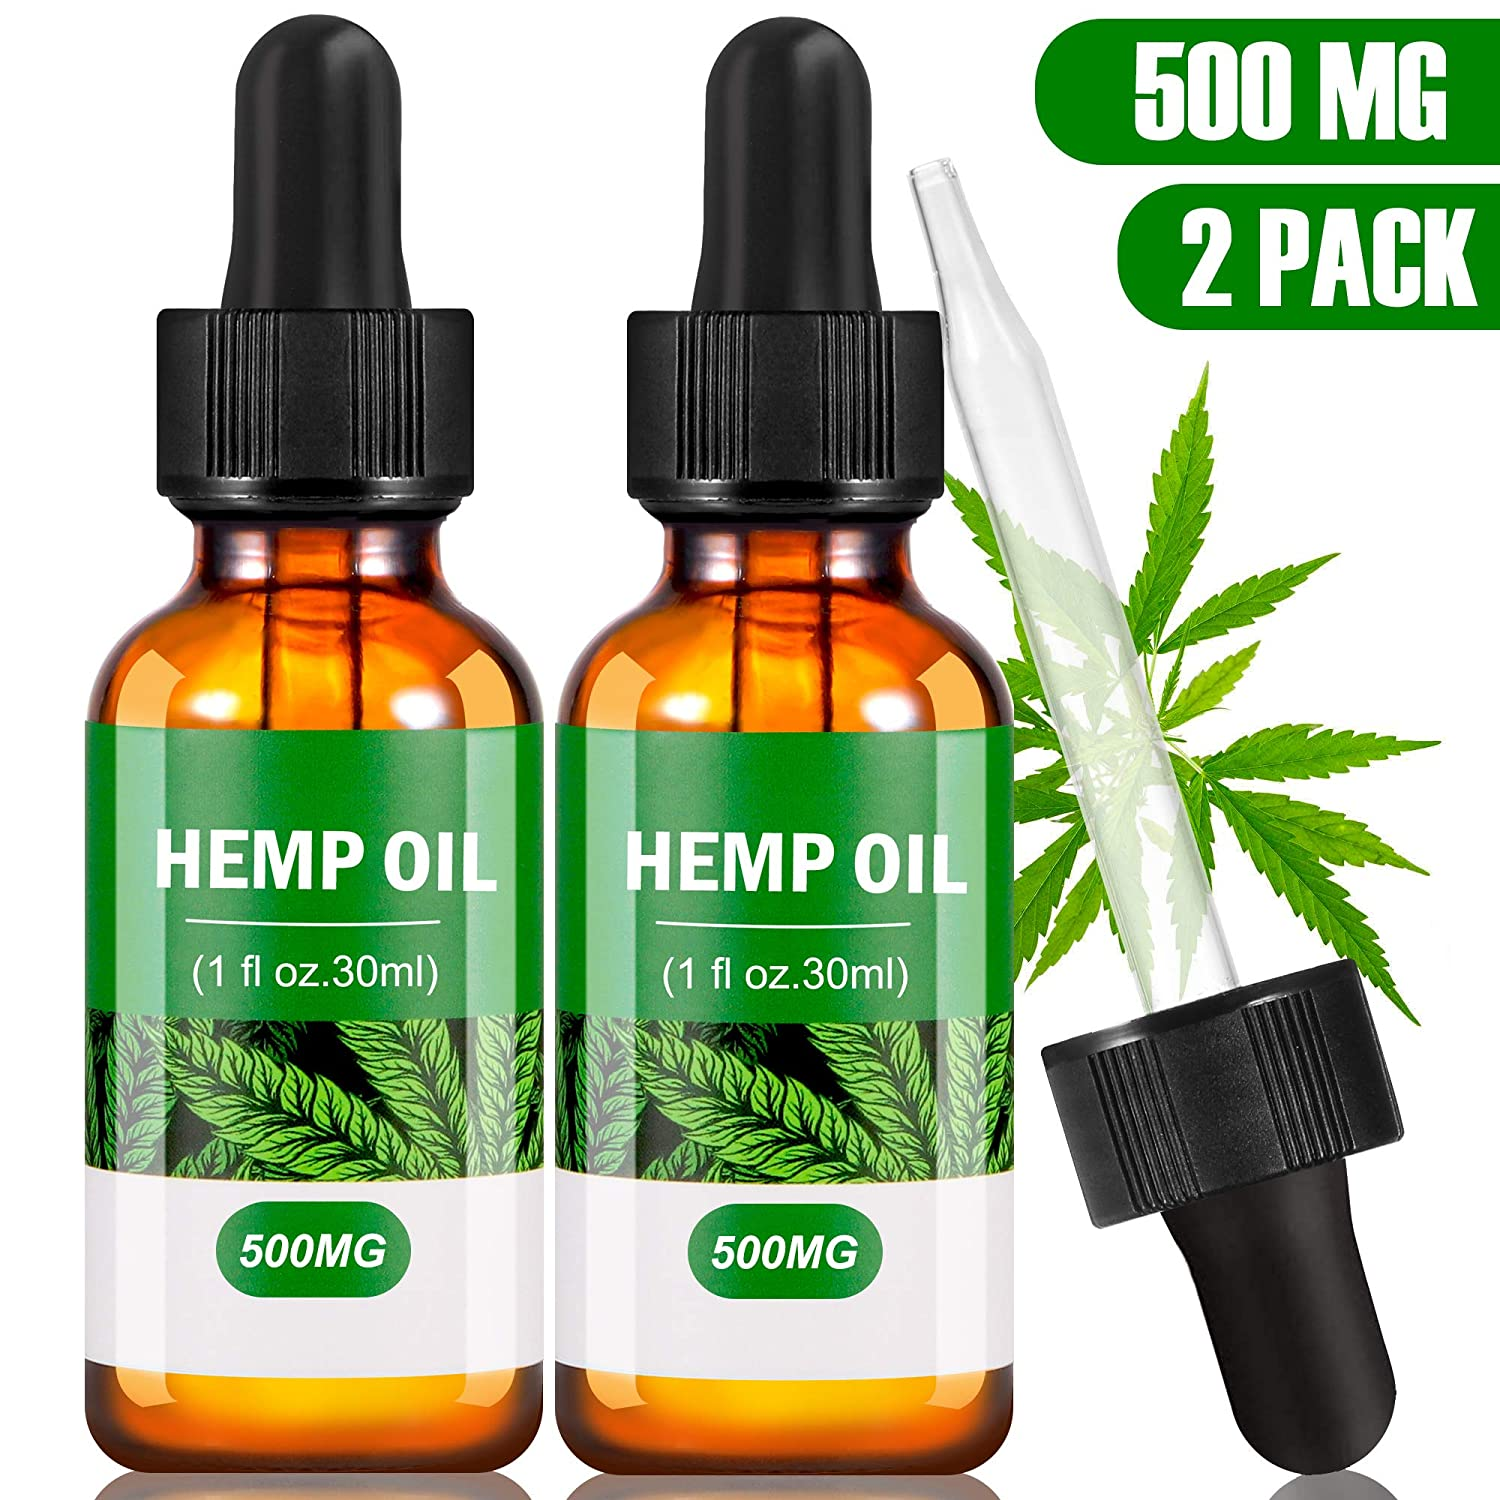 (2 Pack) Hemp 500 MG Extract for Pain, Anxiety & Stress Relief- Helps with Sleep, Skin & Hair top 5 natural sleep supplements - 81QDnE9nHNL - Top 5 Natural sleep supplements – reviews and buying guide